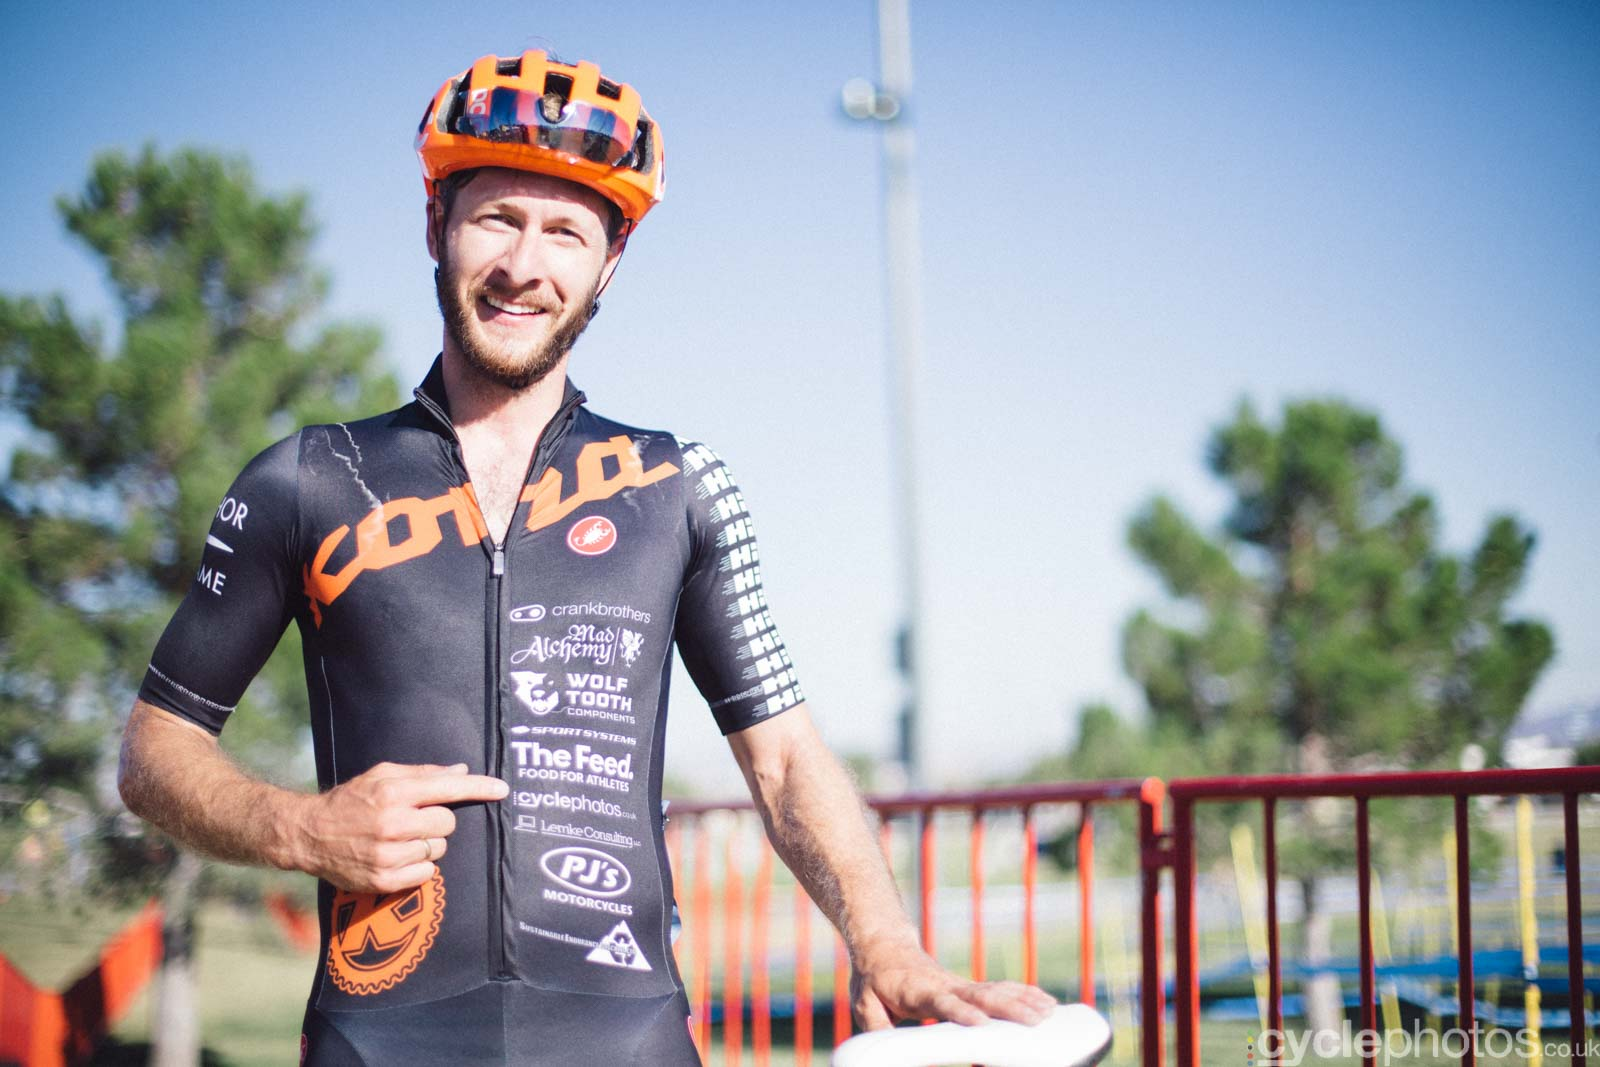 Nick Lemke, the editor of the 14/15 cyclocross album. Note the cyclephotos logo on his jersey, I�m one of his sponsors, which manifests mainly in supportive words, but they clearly have meant the edge as Nick finished on the podium of the USA Cycling amateur race.